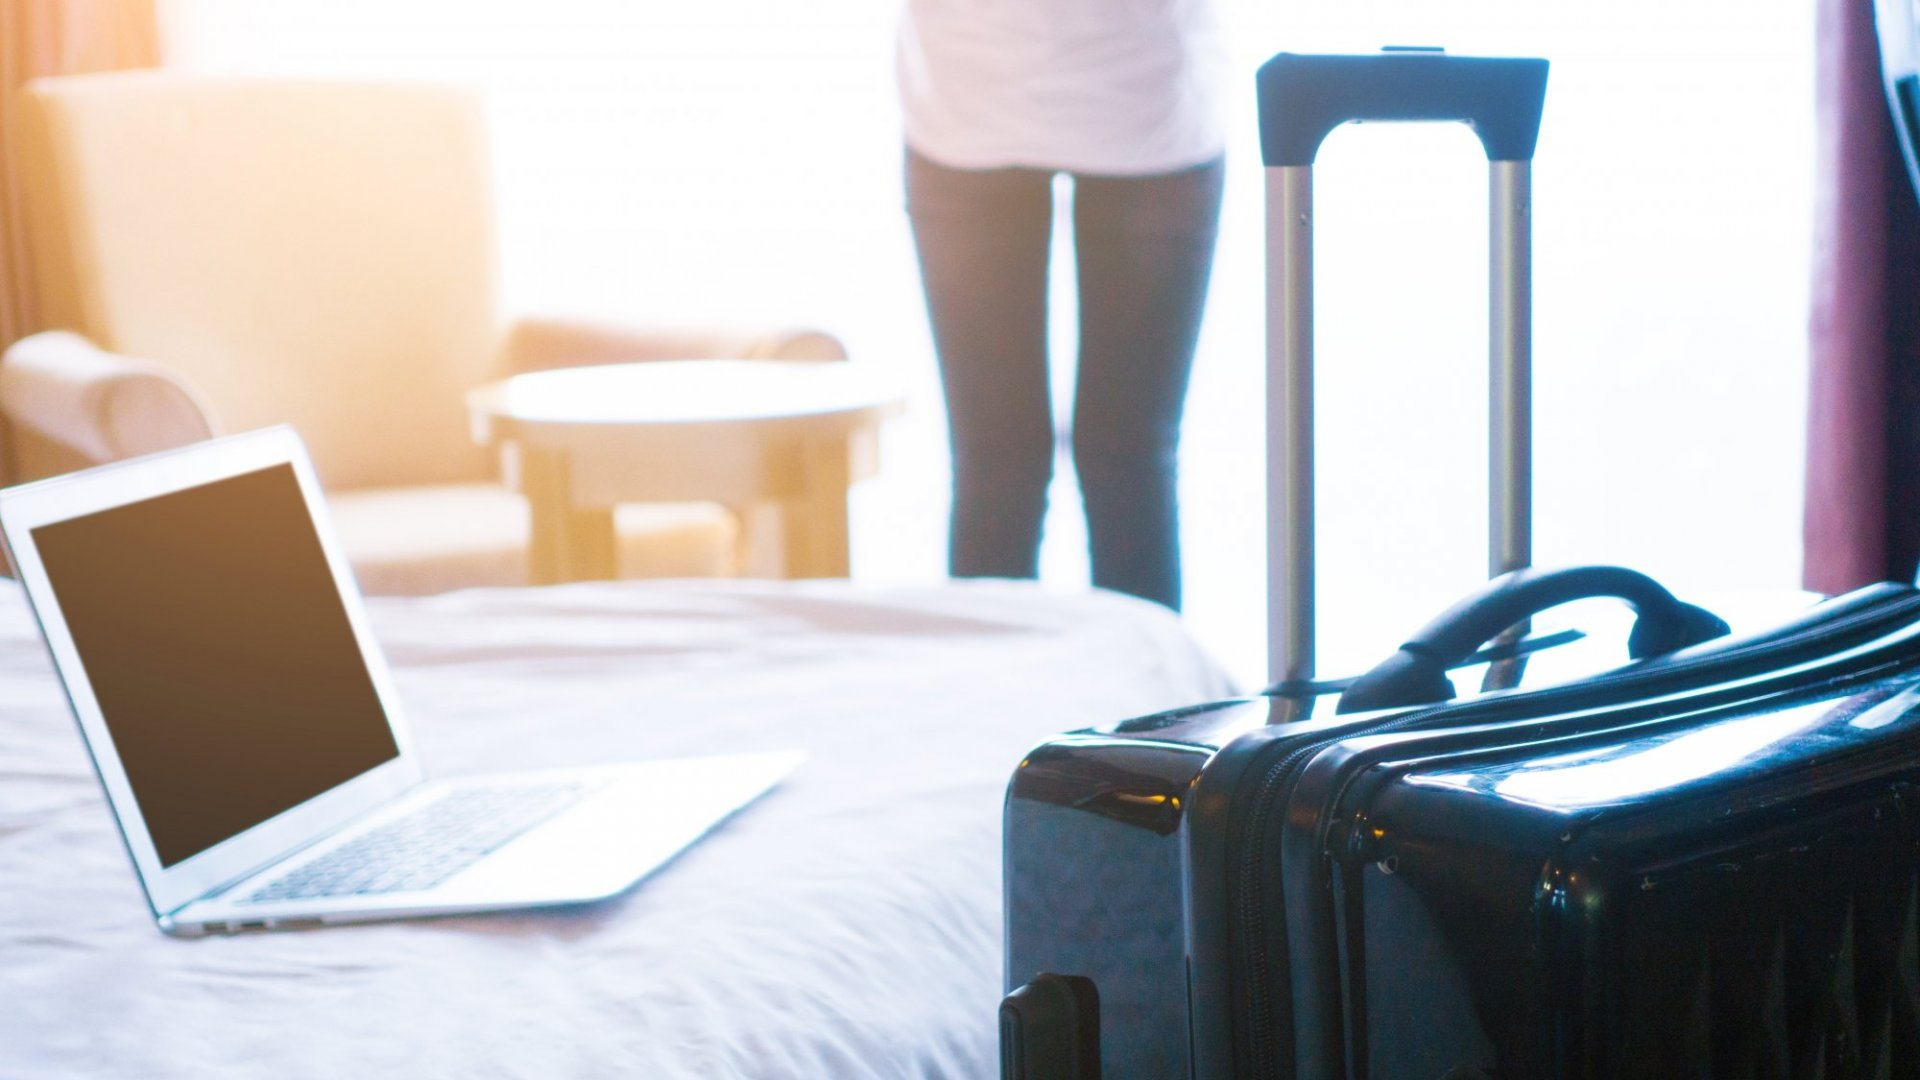 Hotels Are Now Less Cost Effective Than Rentals for Business Travel, Says New Report